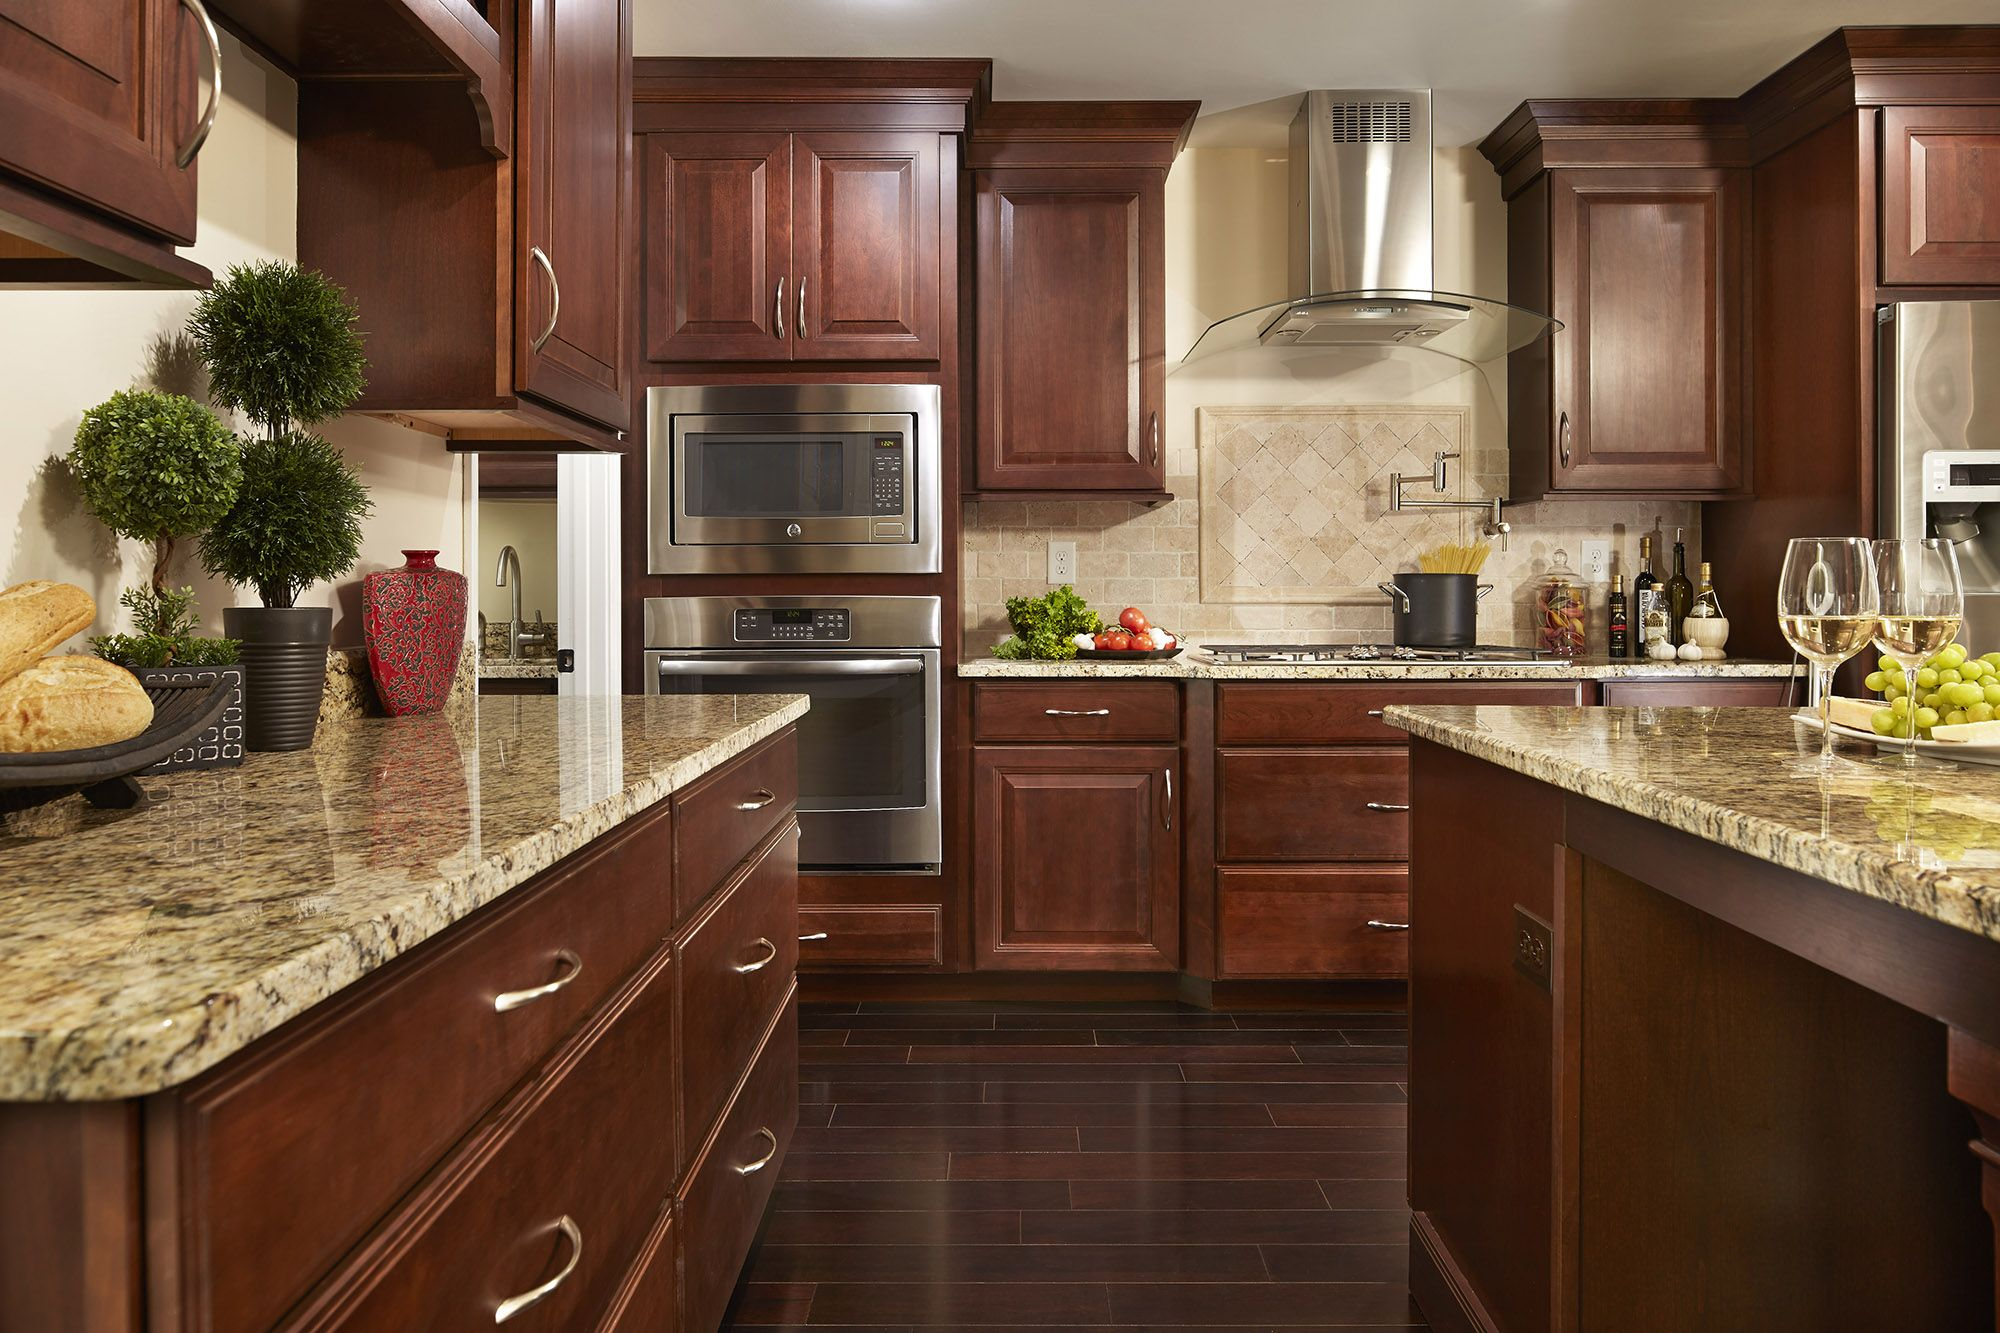 Cherry Shaker Cabinets Kitchen Remodeling Photos Kitchen Cabinet Door Styles Large Kitchen Cabinets Cherry Cabinets Kitchen